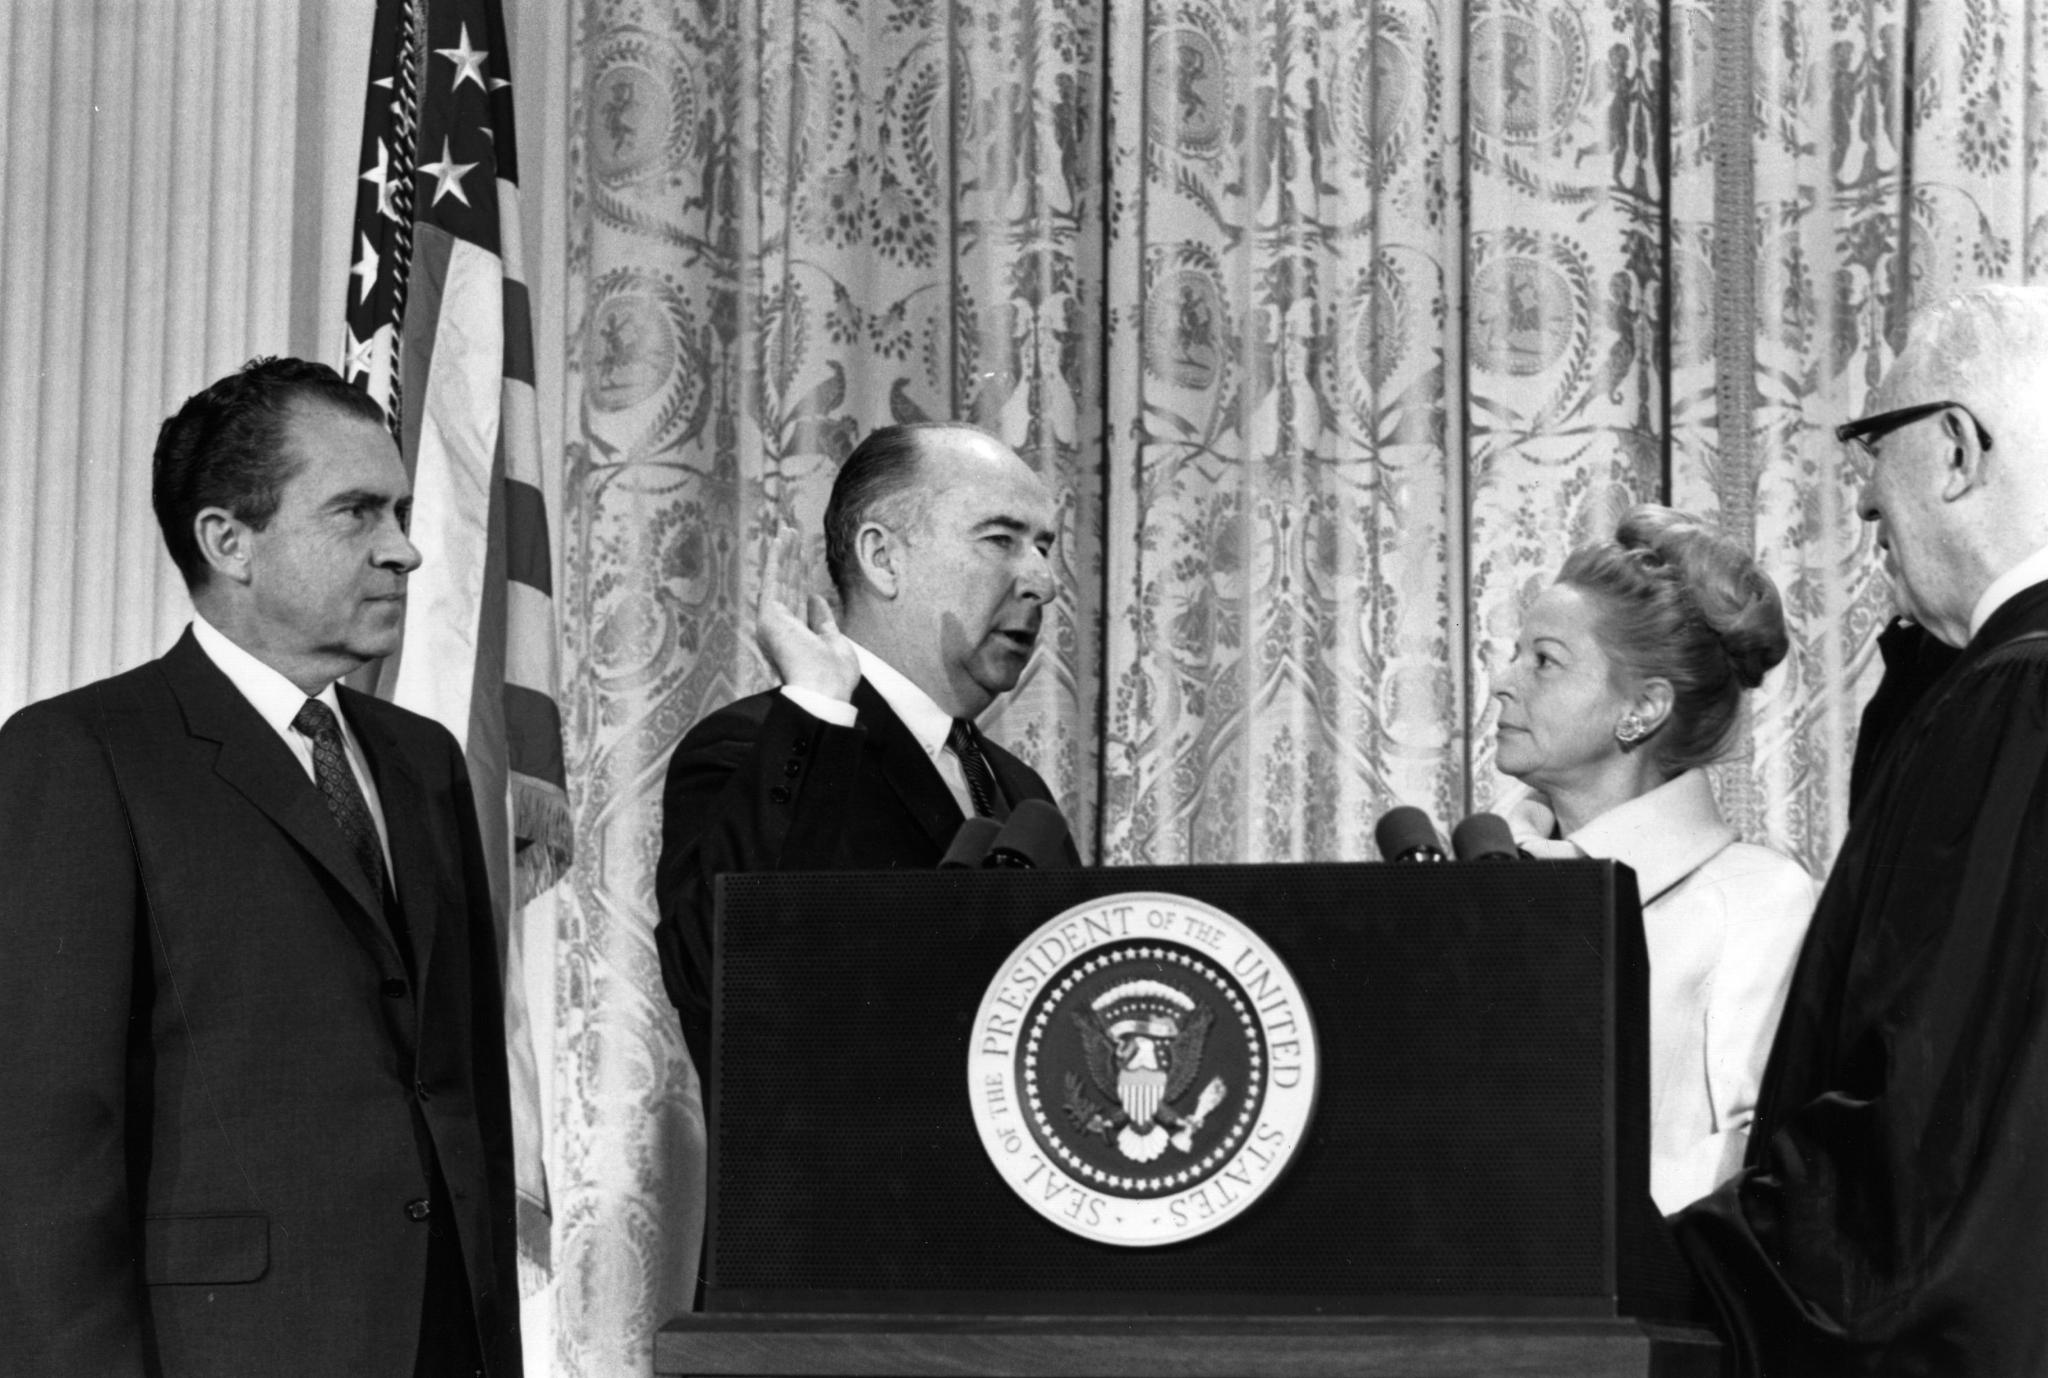 Martha Mitchell with her husband, former Attorney General John Mitchell, one of Richard Nixon's top aides, when he was being sworn in at the Senate on May 11, 1973.